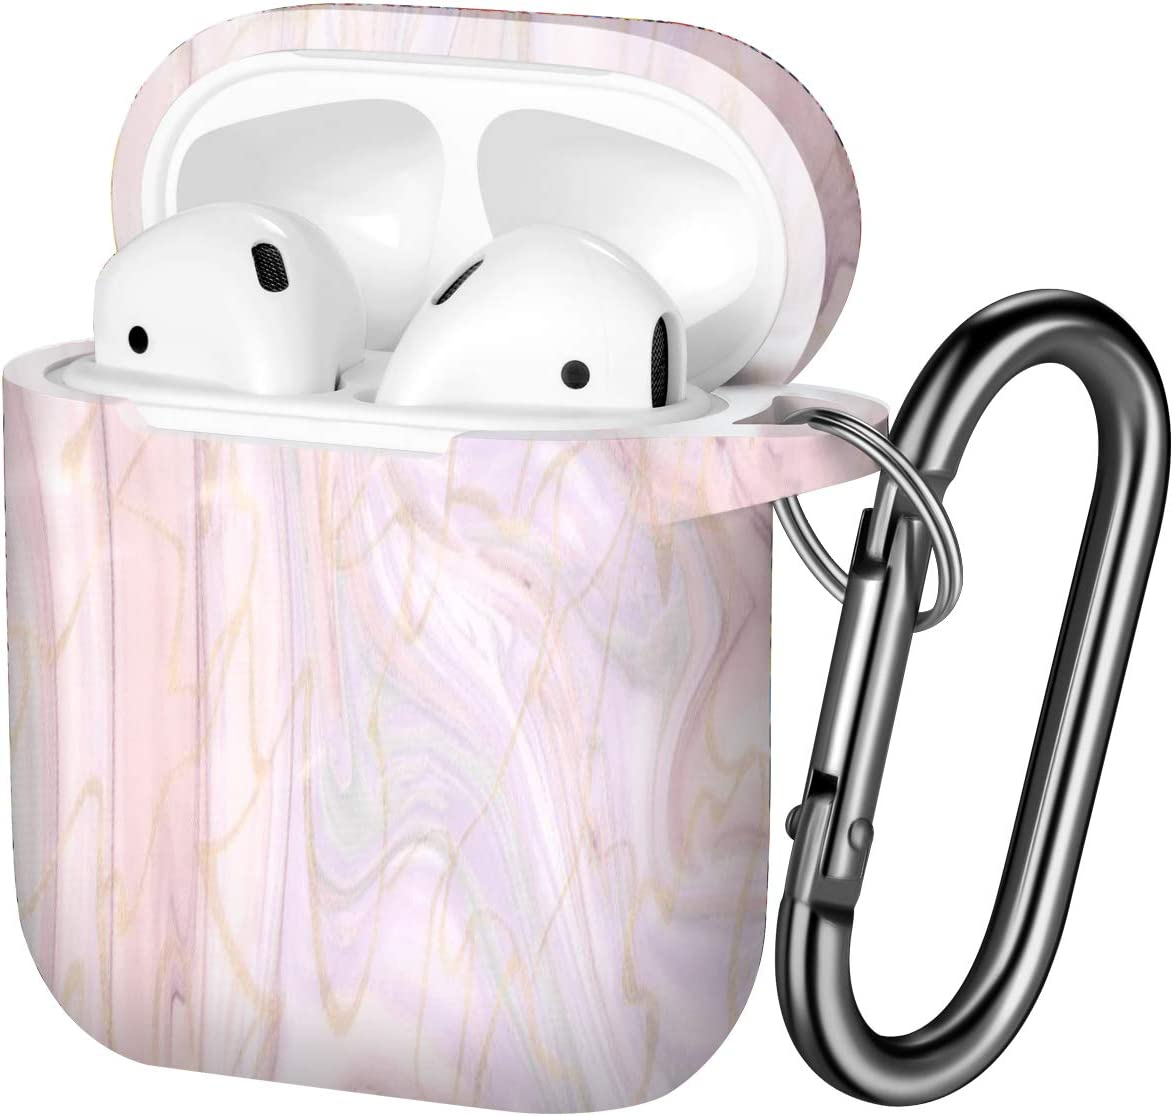 Hamile Compatible with AirPods Case Cute Fadeless Pattern Silicone Protective Cases Cover Skin Designed for Apple Airpod 1 & 2, Women Men, with Keychain (Pink Marble)